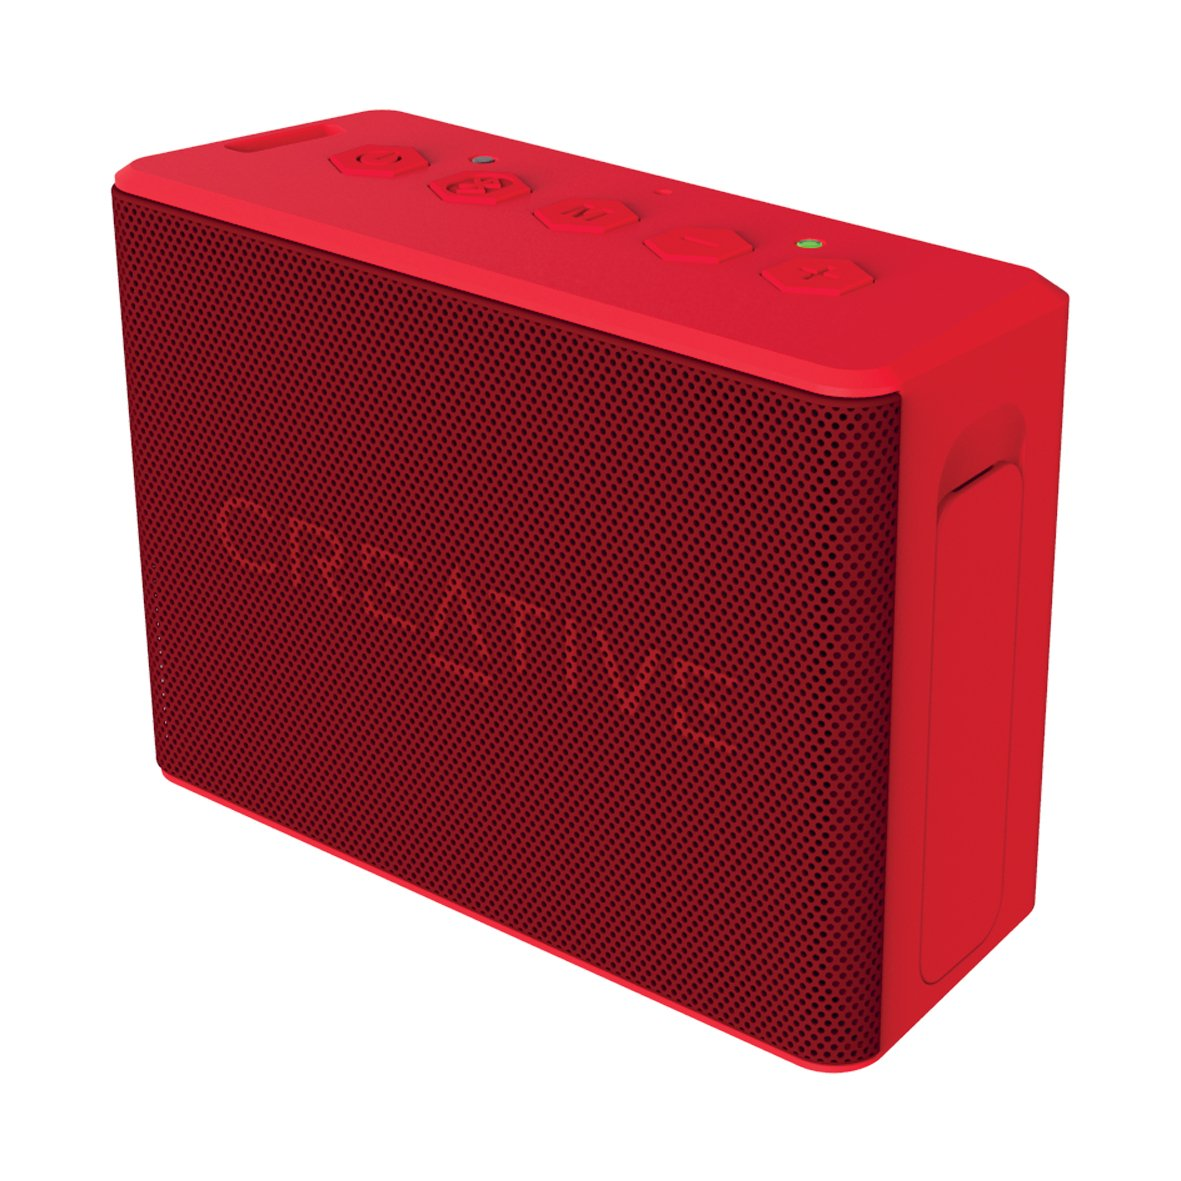 Creative Labs MUVO 2c Stereo Rectangle Red